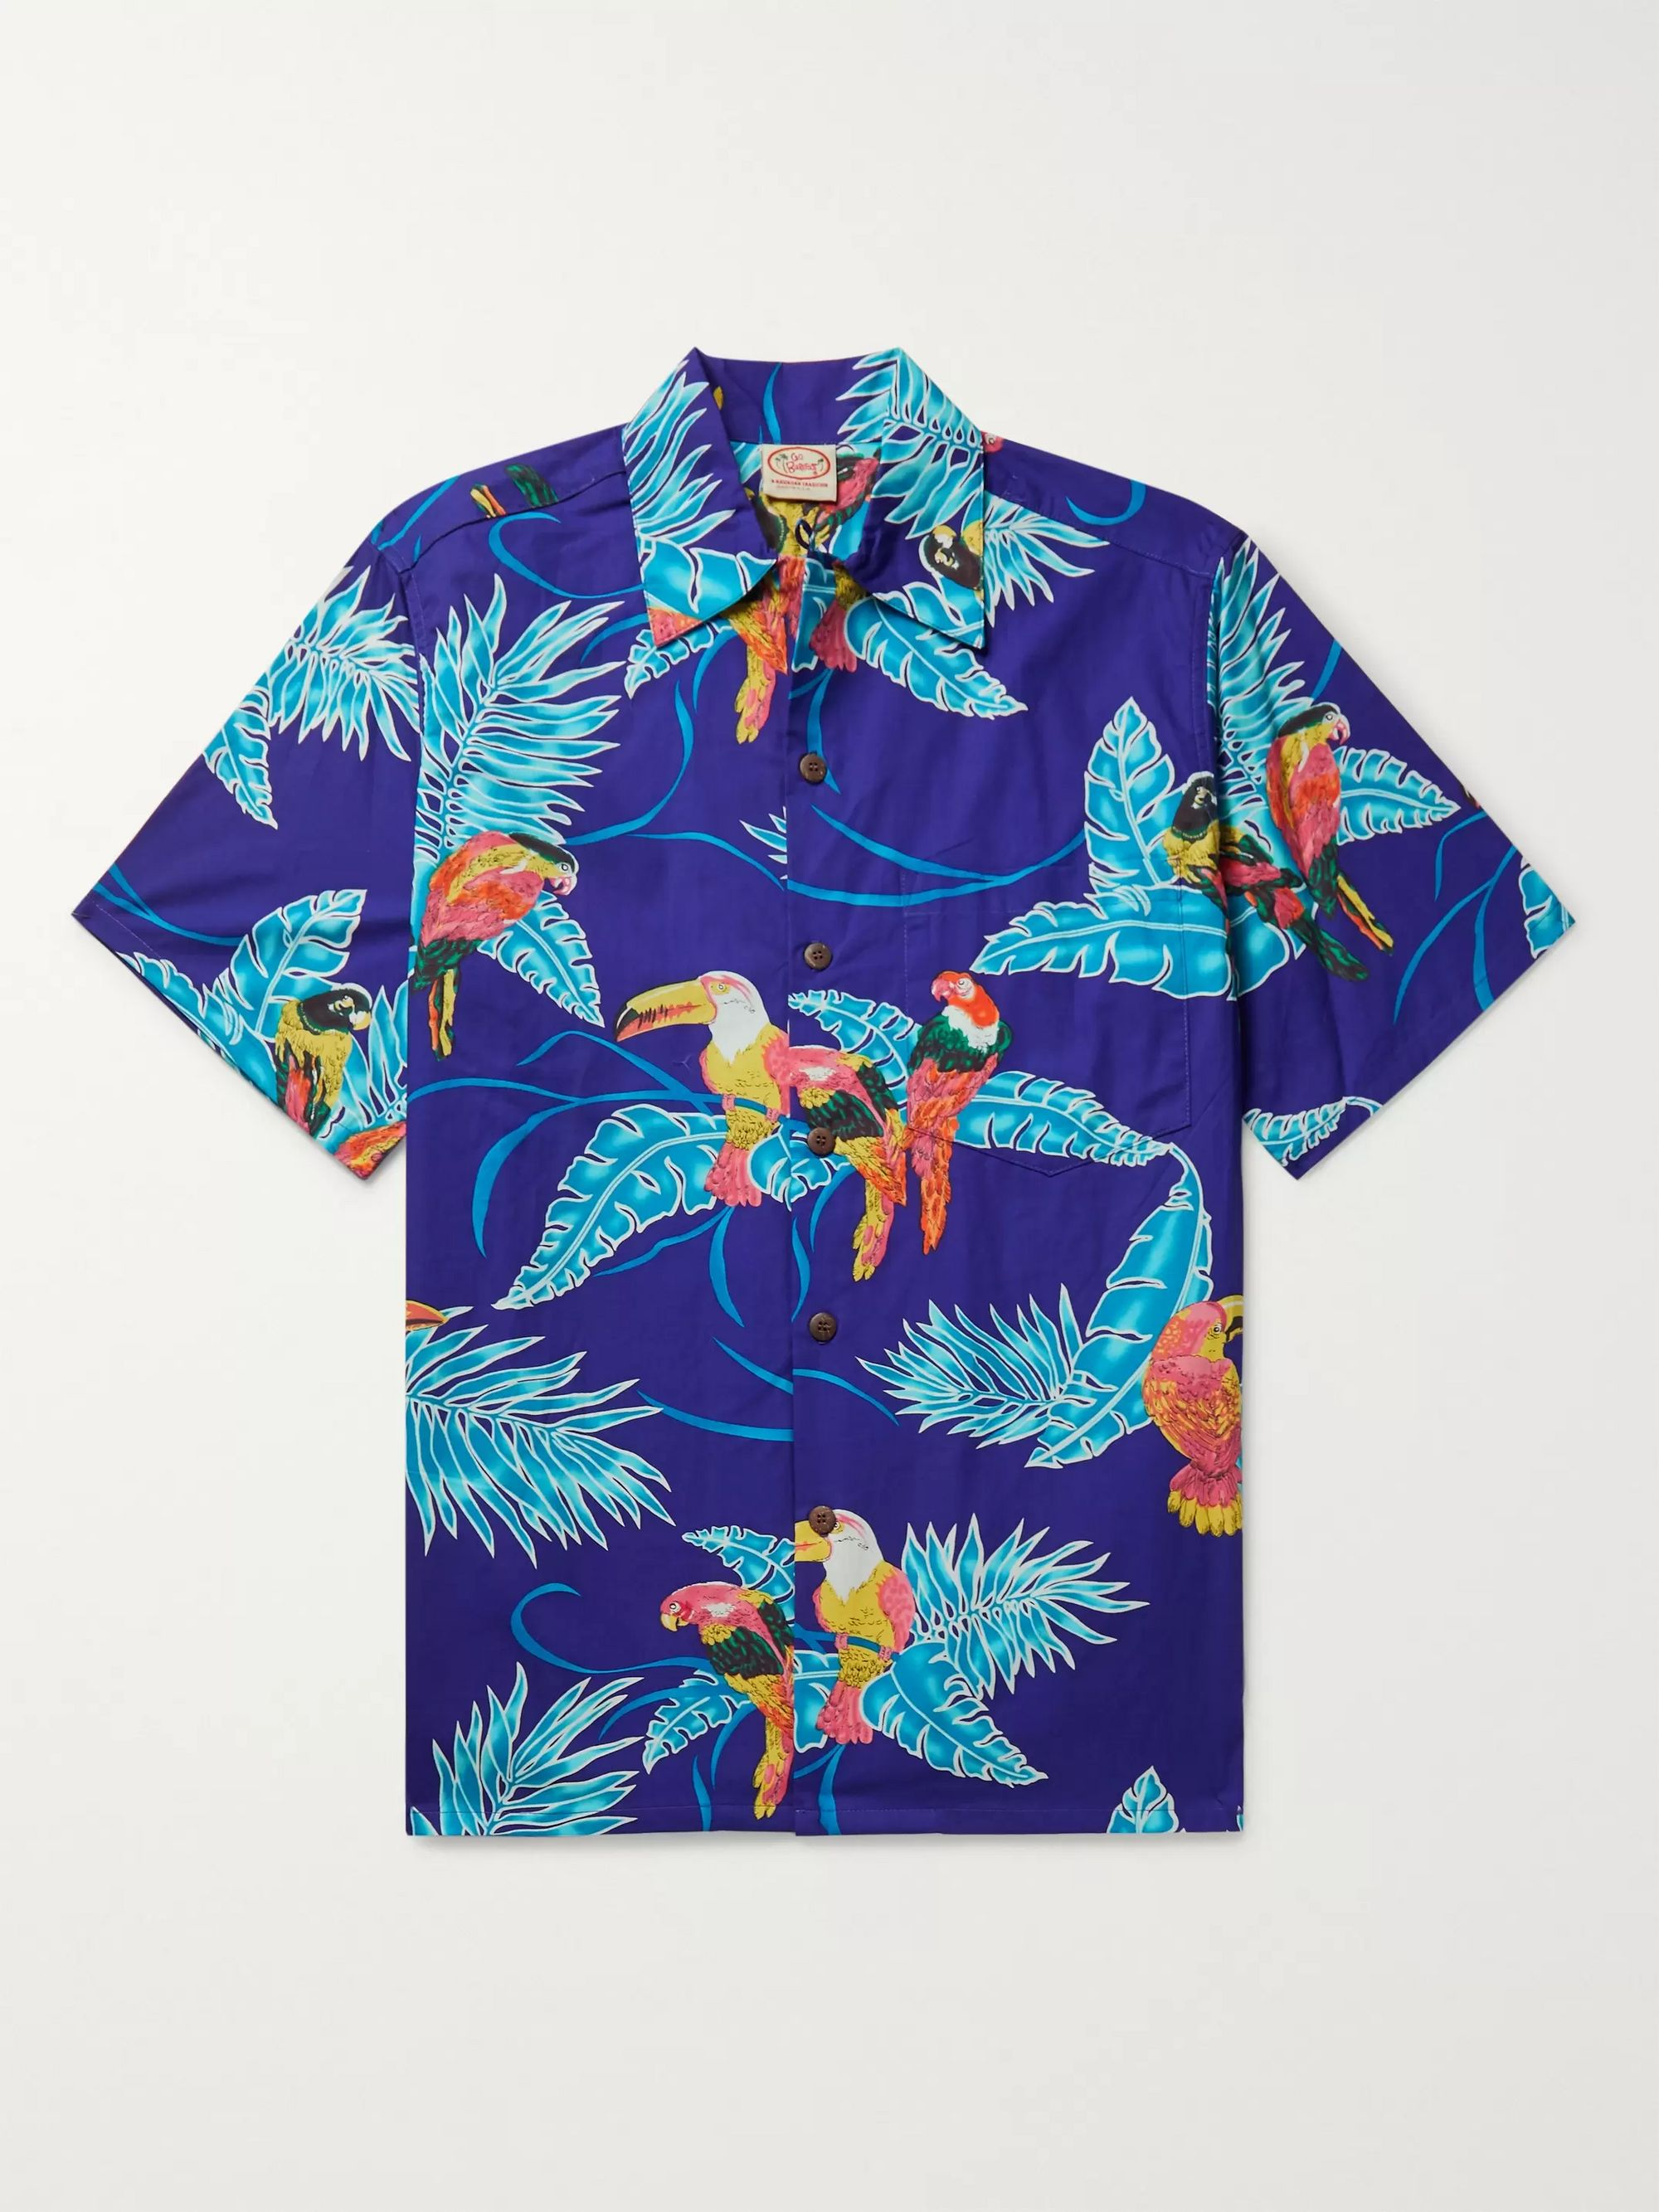 Go Barefoot Tropical Birds Printed Cotton Shirt